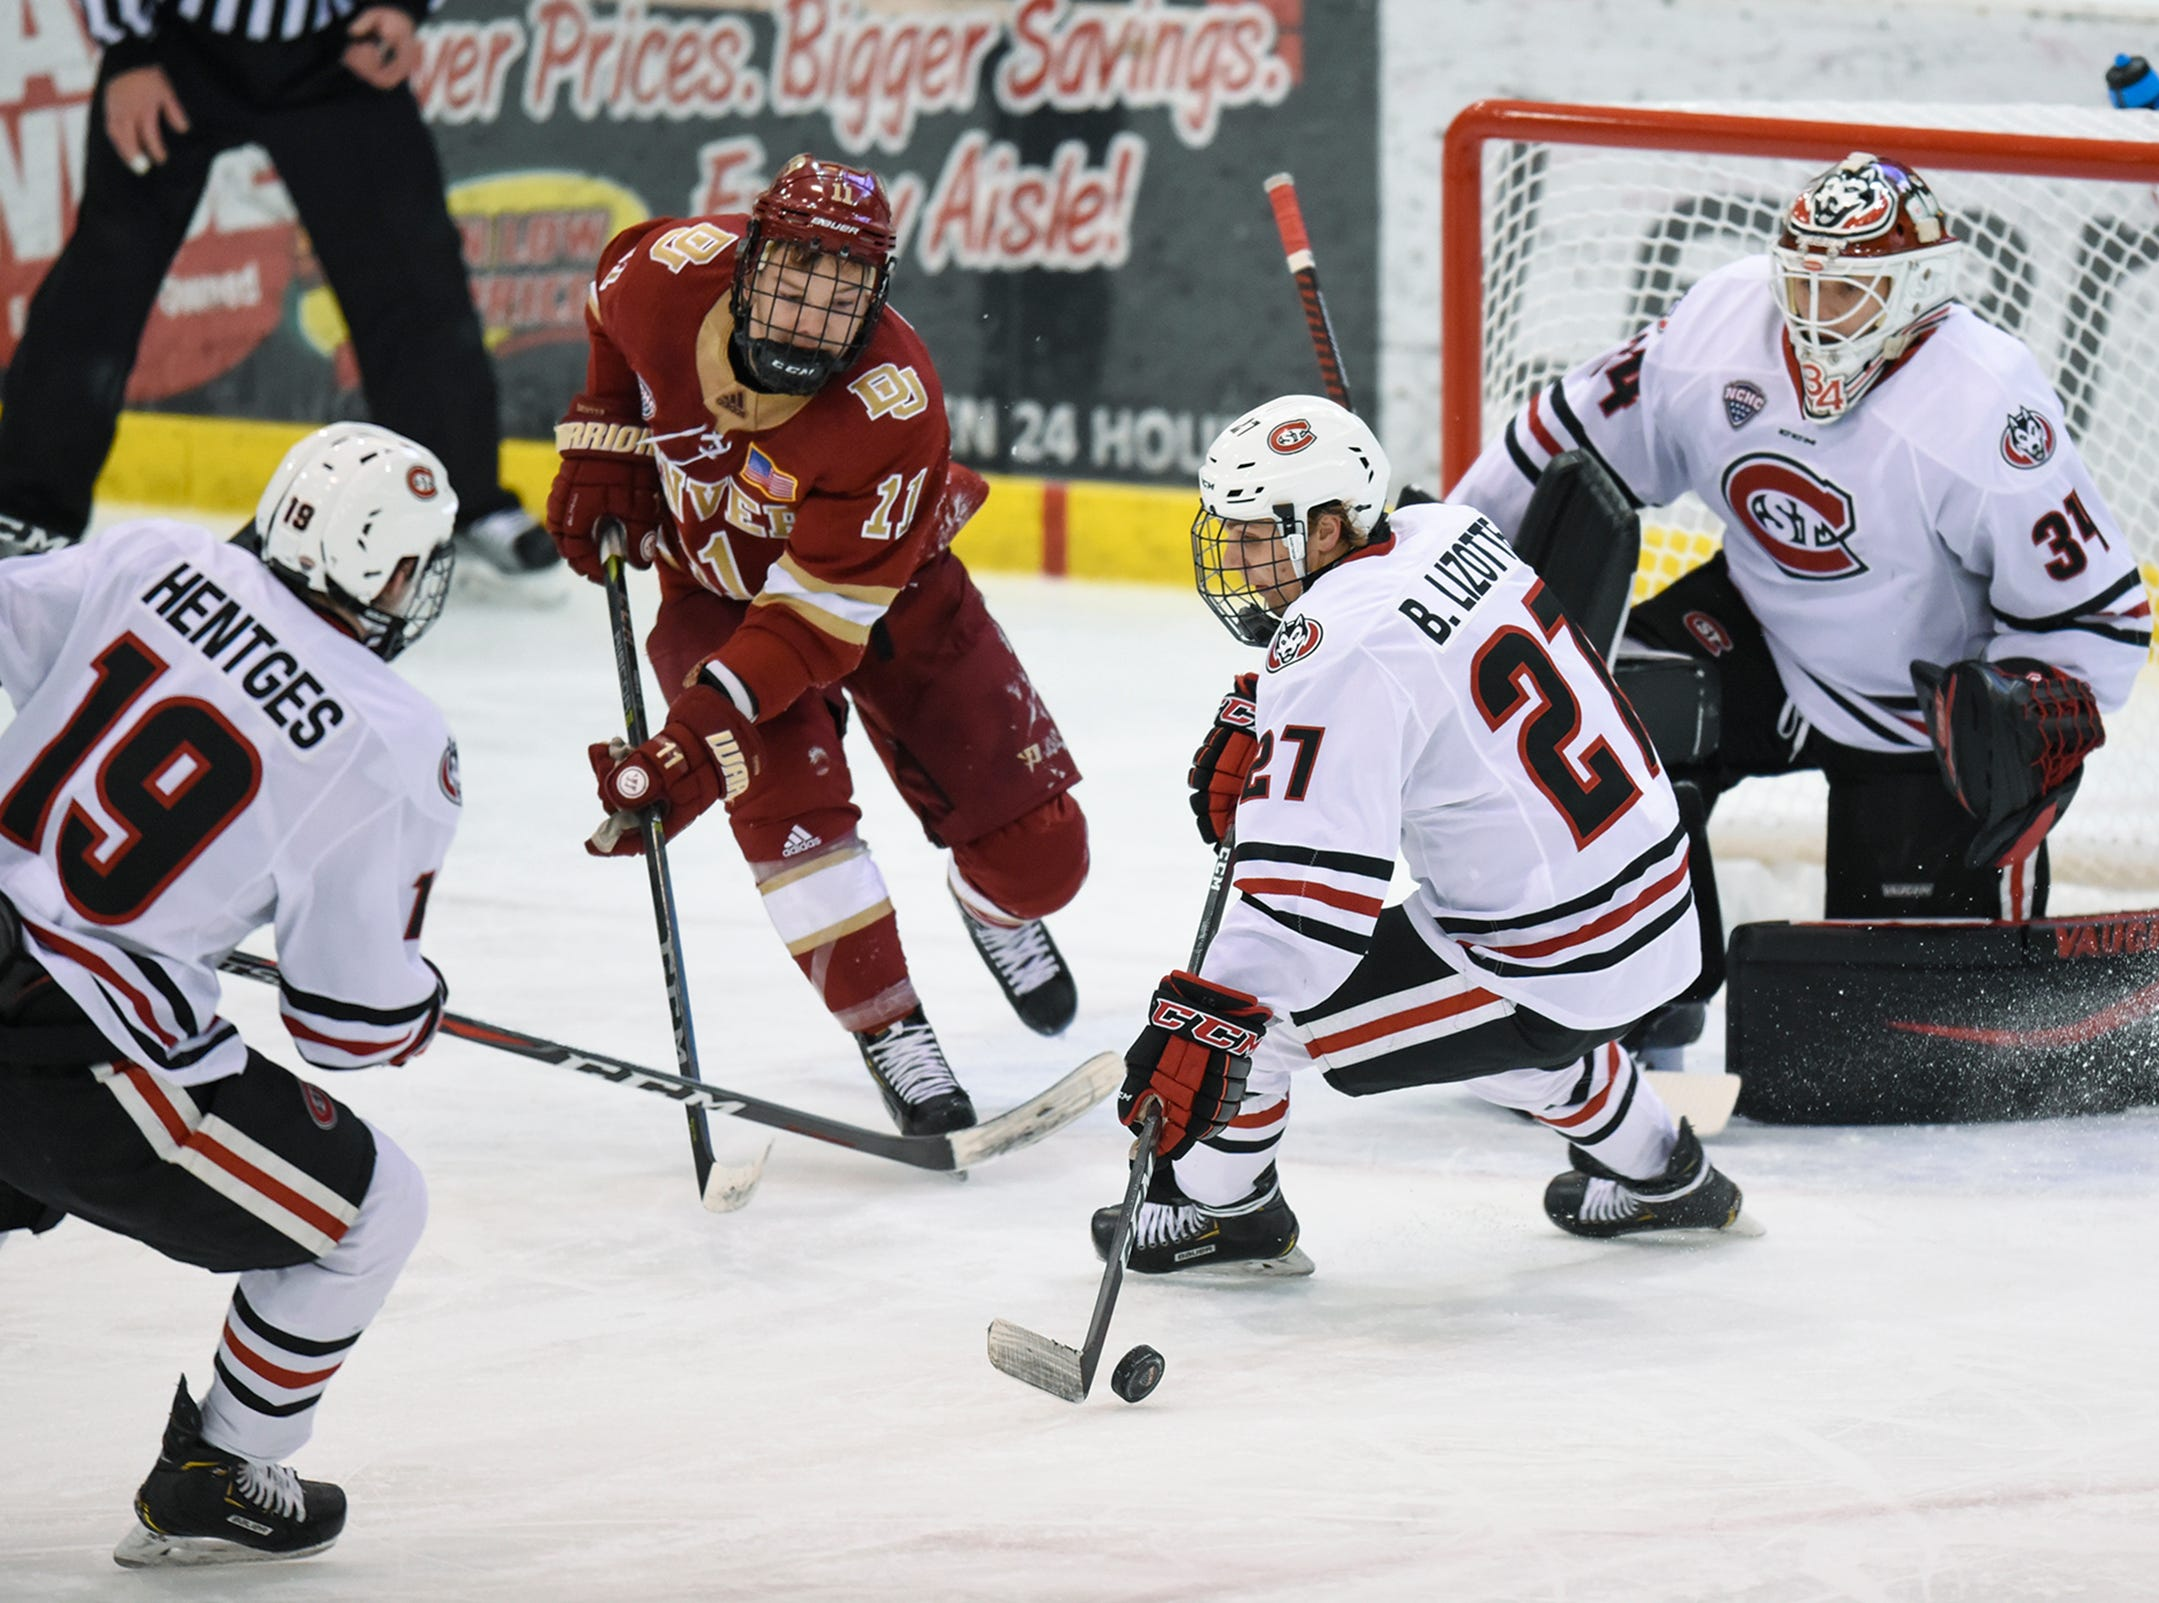 Blake Lizotte gets control of the puck in front of the St. Cloud State goal during the first period of the Saturday, Nov. 10, game against the University of Denver at the Herb Brooks National Hockey Center in St. Cloud.